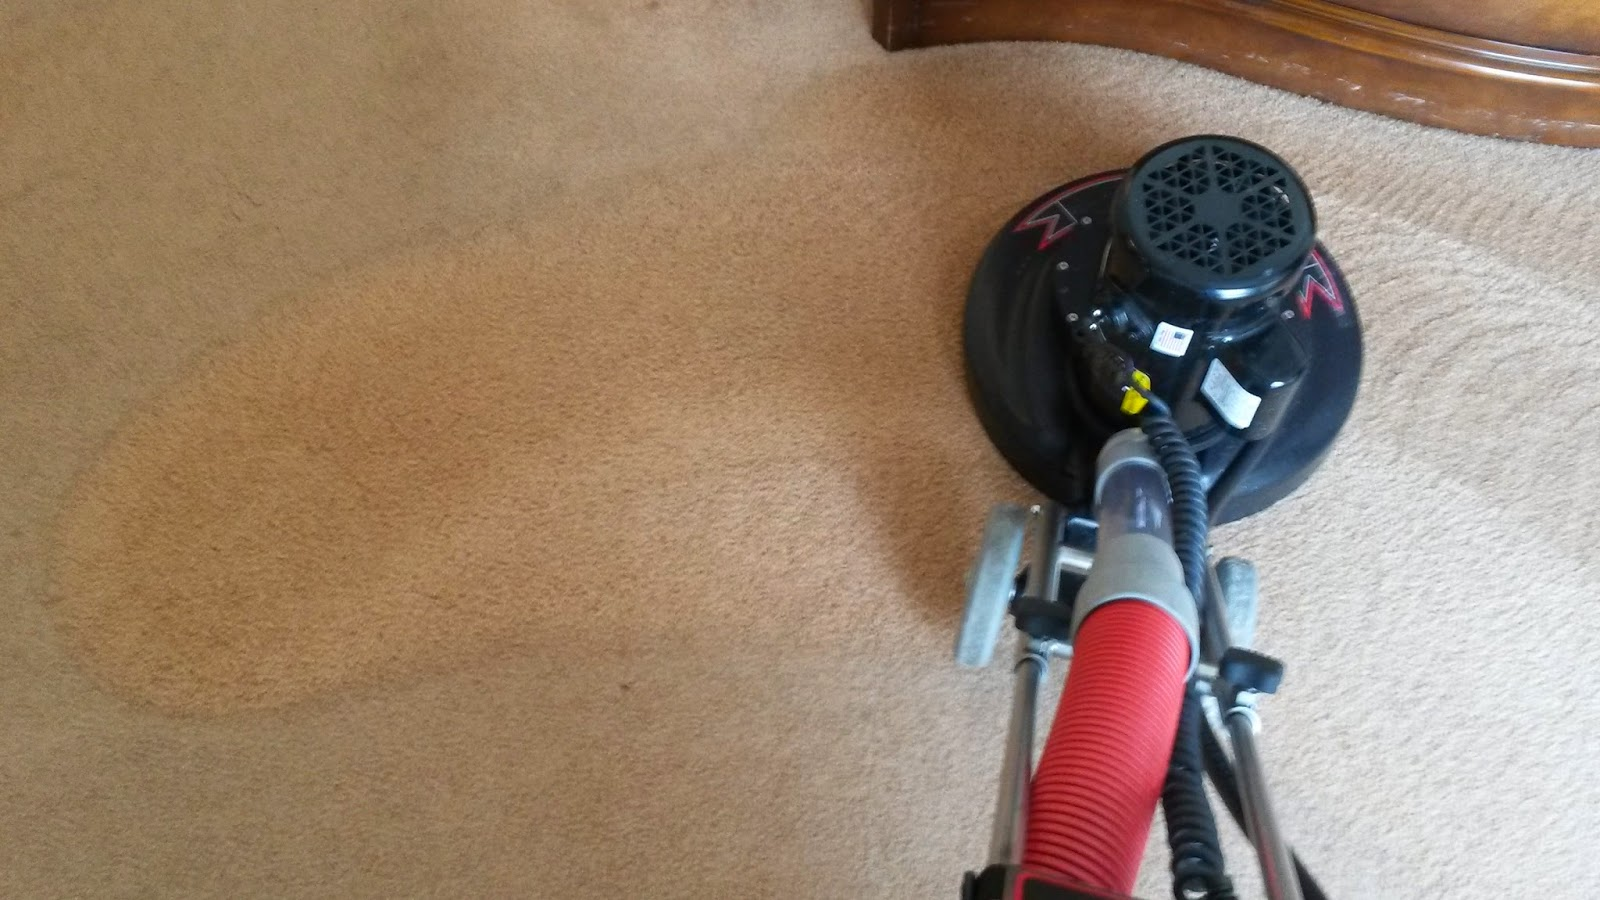 Manalapan carpet cleaning in manalapan nj new rotovac carpet carpet cleaning manalapan nj services wow dont waste money on just any cleaner until you see the new rotovac xl 360 plow through the toughest dirtiest sciox Gallery